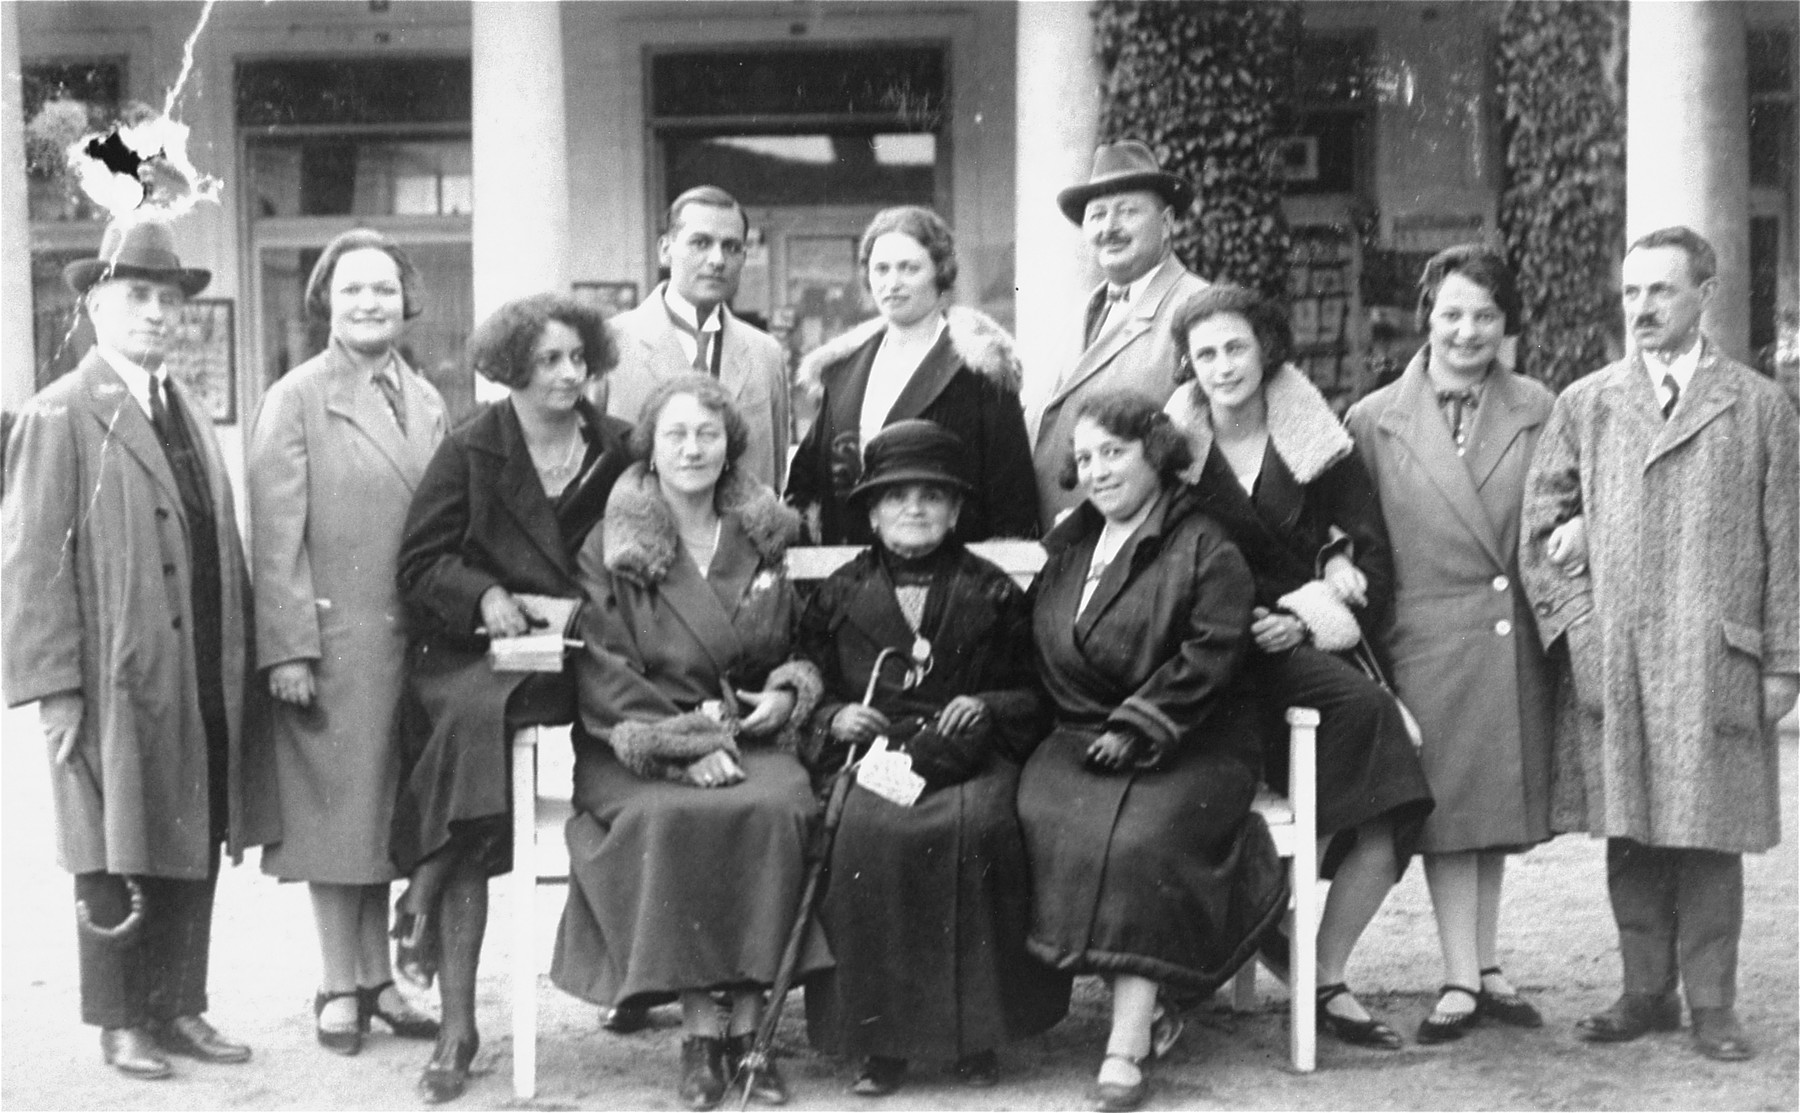 Group portrait of Jewish vacationers at a spa in Karlsbad, Czechoslovakia.    The donor, Magda Herzog Mueller, is pictured standing, second from the right.  Her sister, Julie, is standing, second from the left; her mother Lilly is seated on the bench at the right; her father, Jakub is standing behind Lilly.